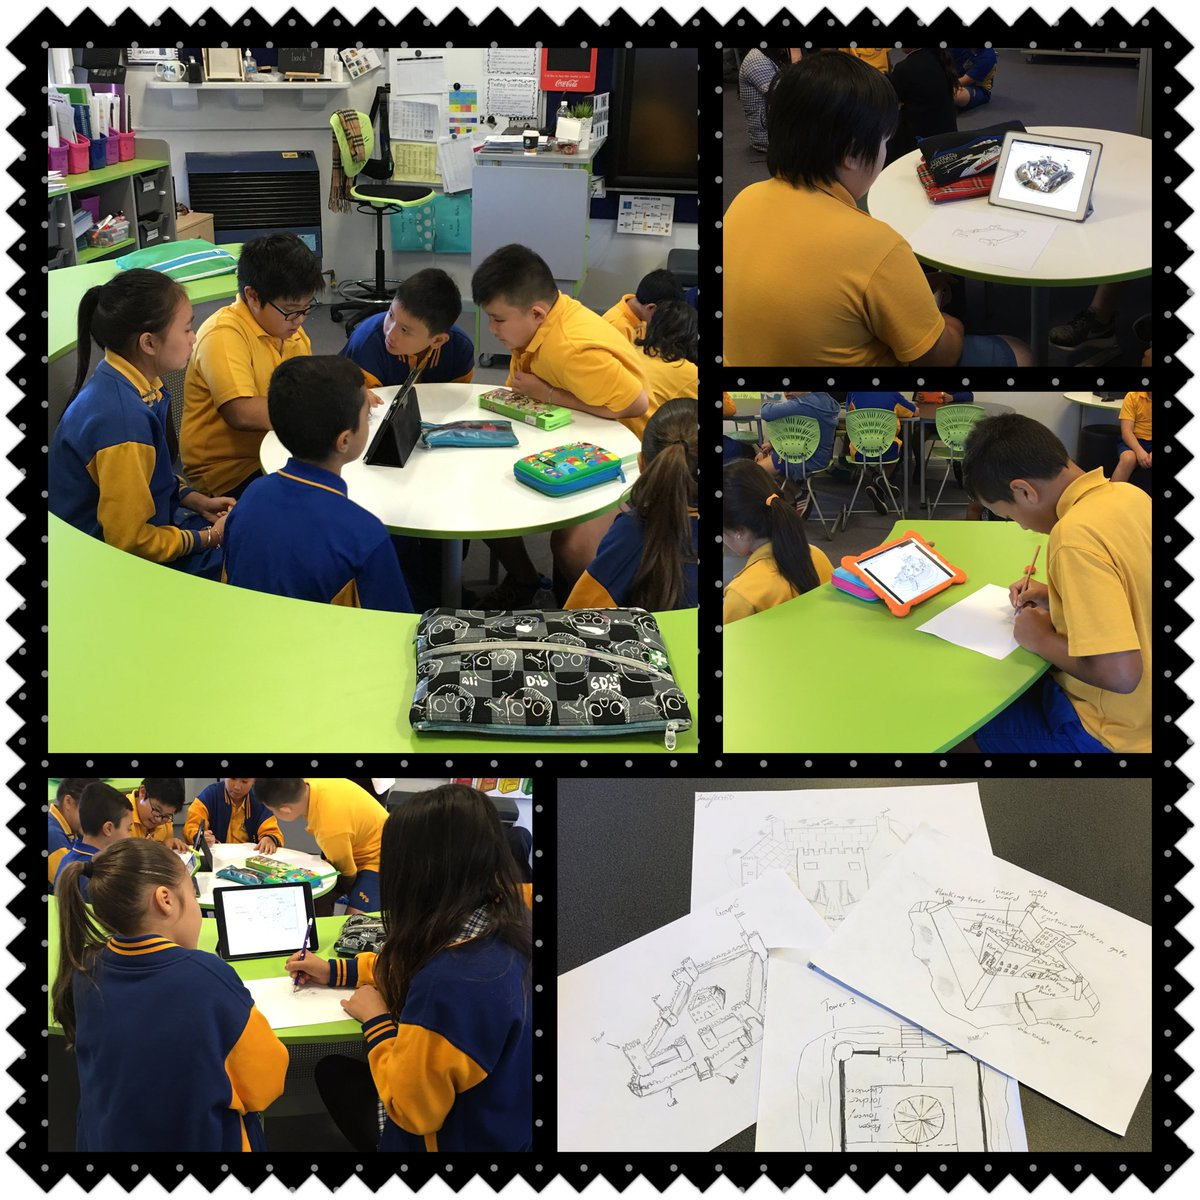 #TheLearningHub engage in #GDD16 designing castle floor plans. Next step is to make our castles! https://t.co/M8jSbXr4jf